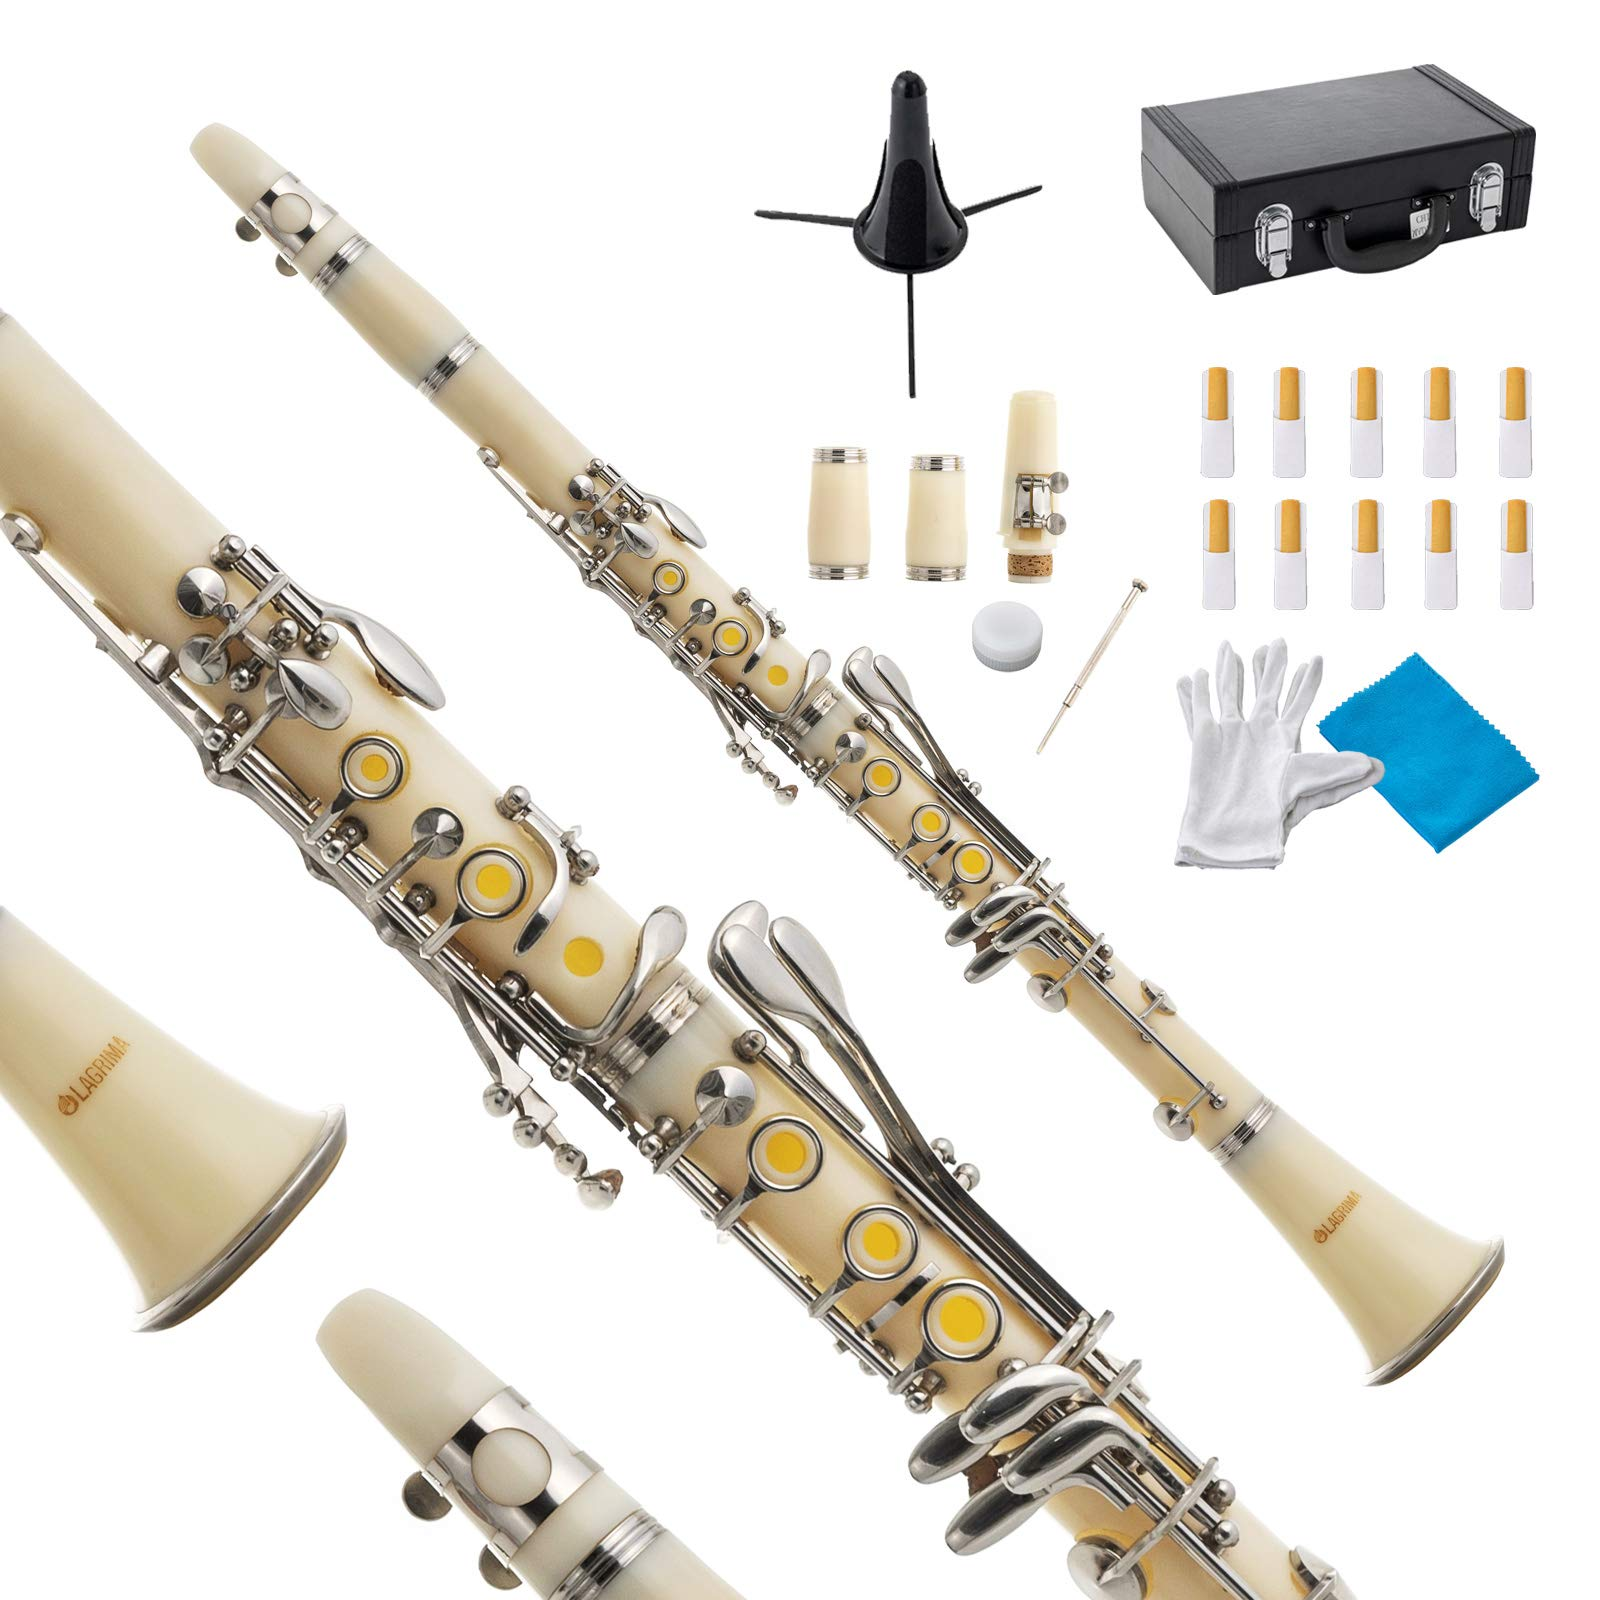 LAGRIMA B Flat Beginner Student Clarinet with 2 Barrels, Case, Stand,10 Reeds, Mouthpiece and Warranty (White) by LAGRIMA